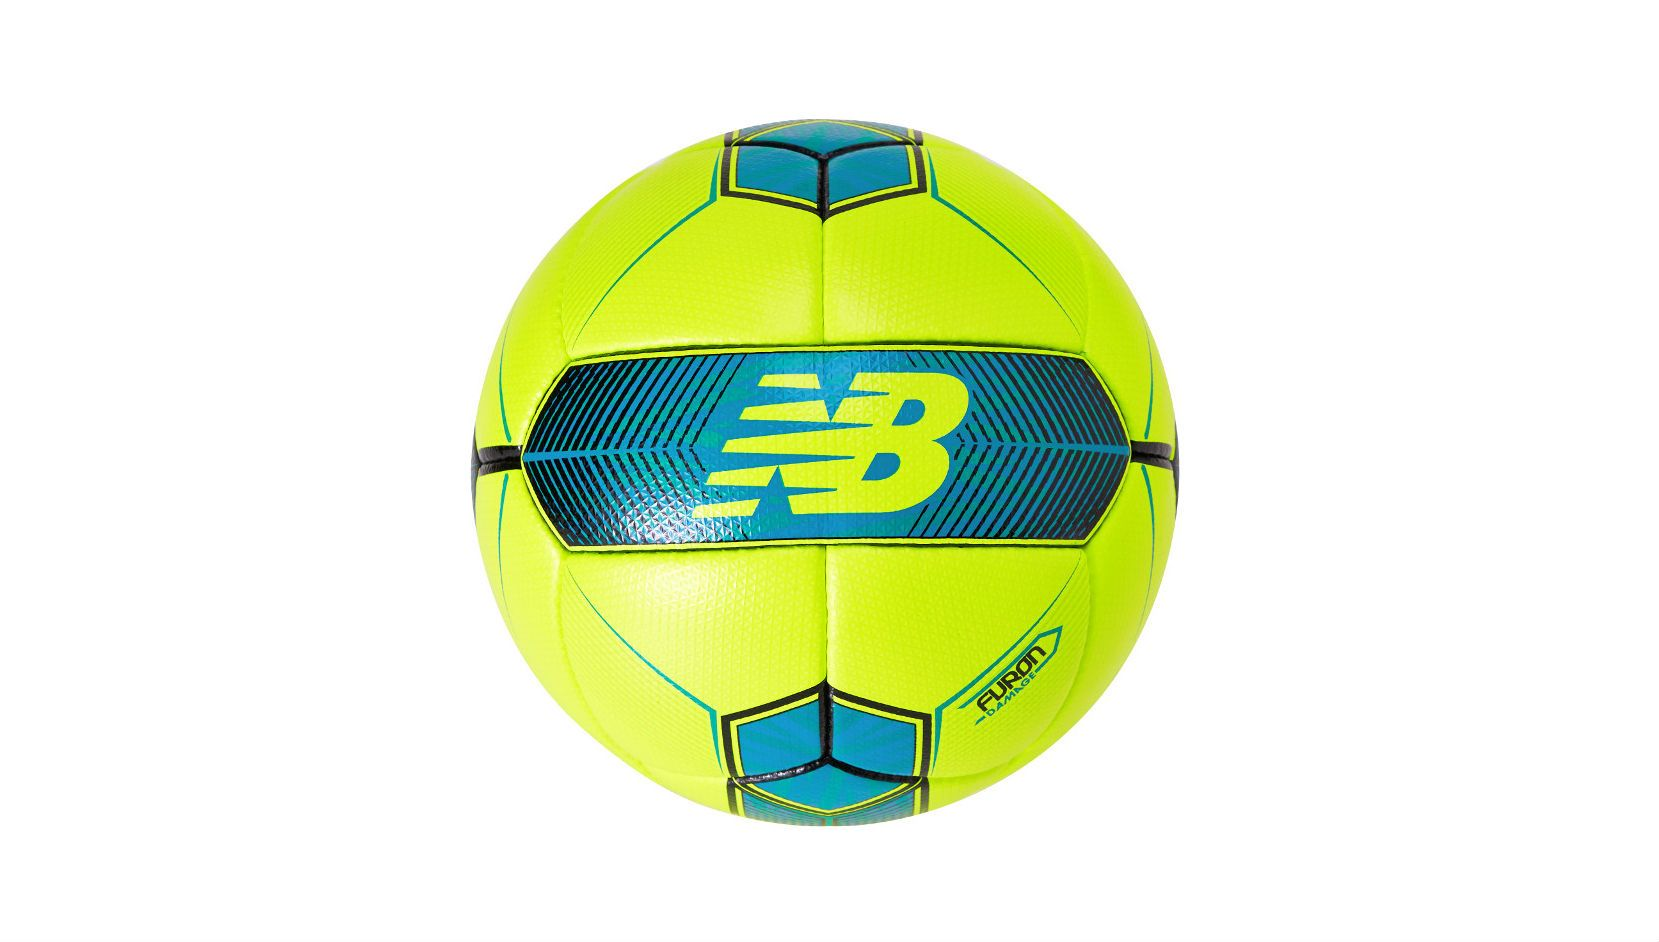 FURON DAMAGE HI-VIS FOOTBALL - FIFA QUALITY PRO бюстгальтер vis a vis цвет розовый bf0868p размер 70c